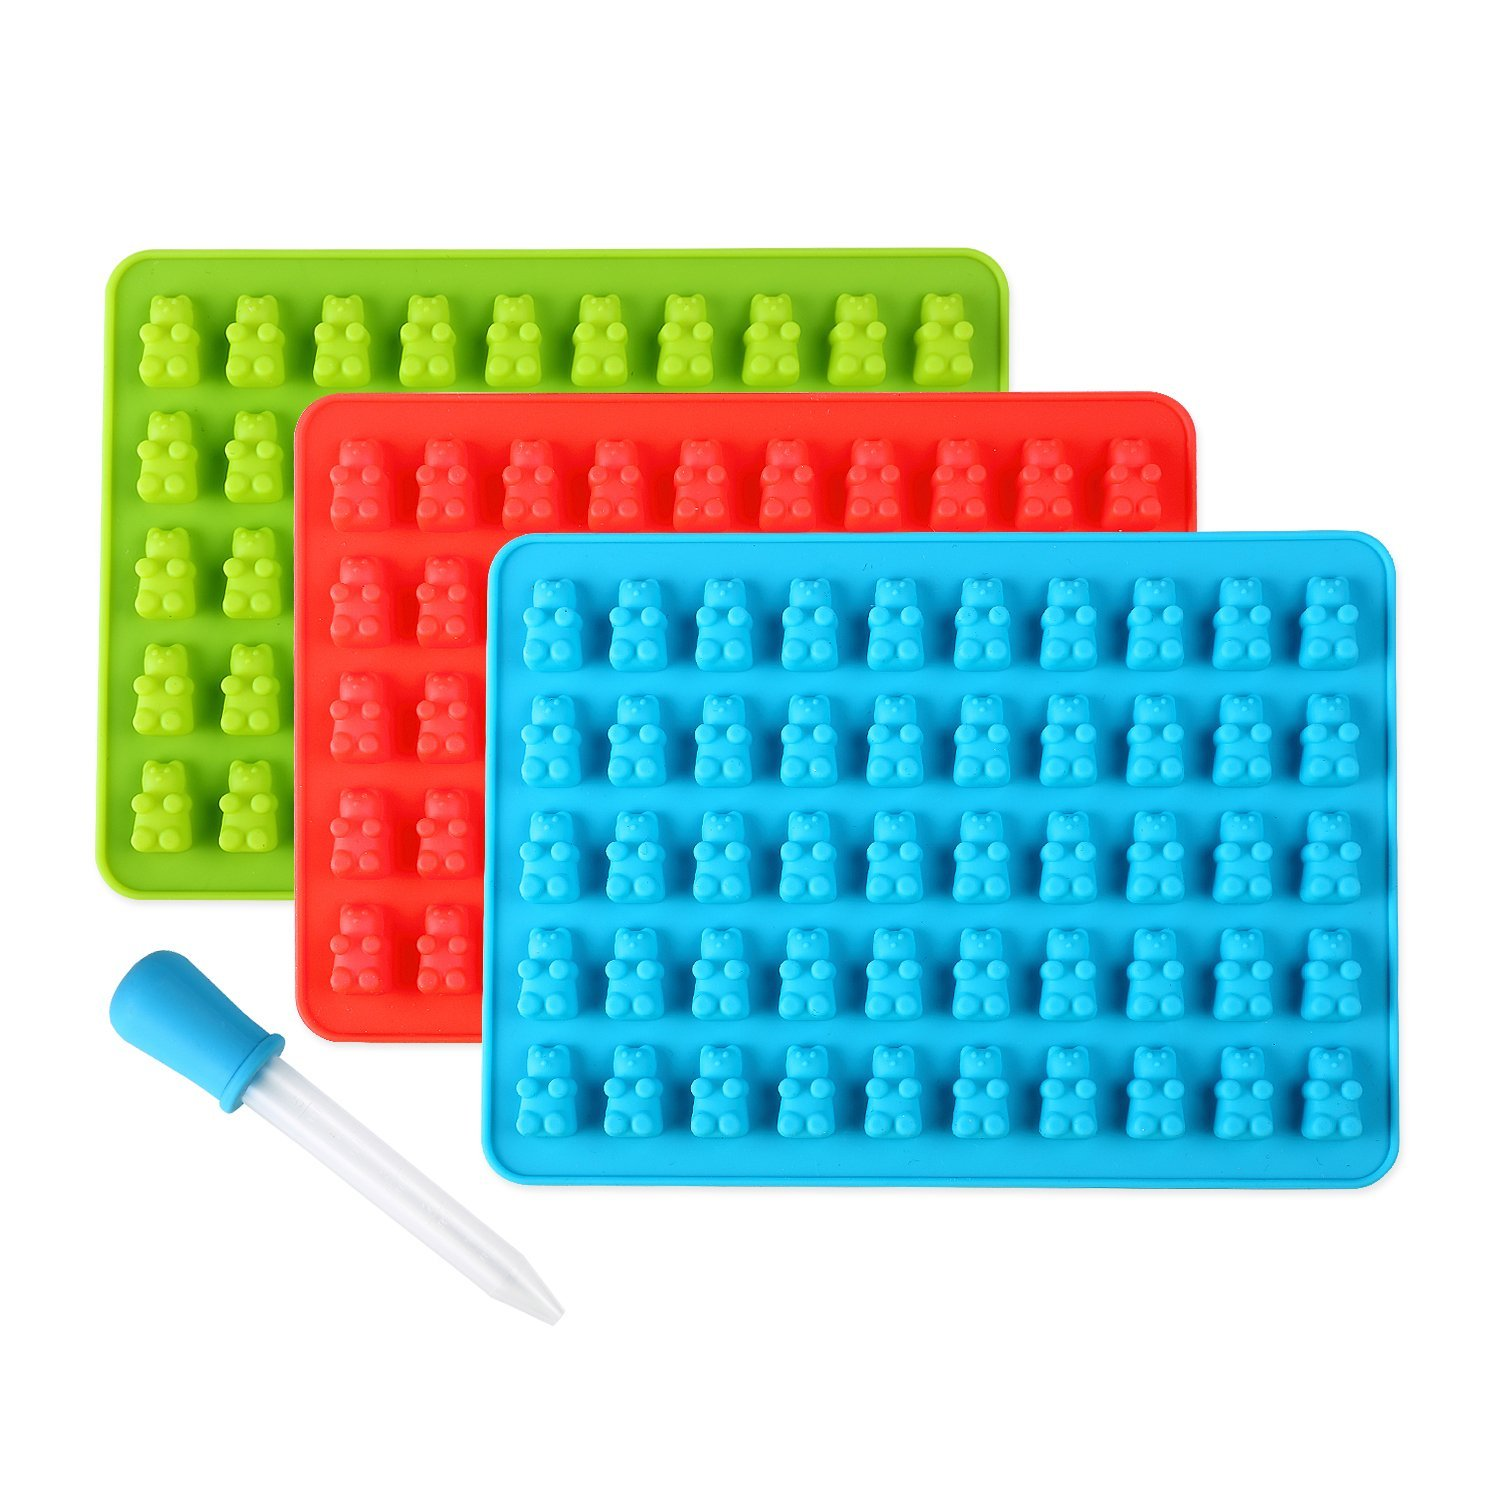 Lizber Gummy Bear Molds 3 Pack, Silicone Candy Molds 50 Cavities with Bonus Dropper, FDA Approved (Blue, Green, Red)